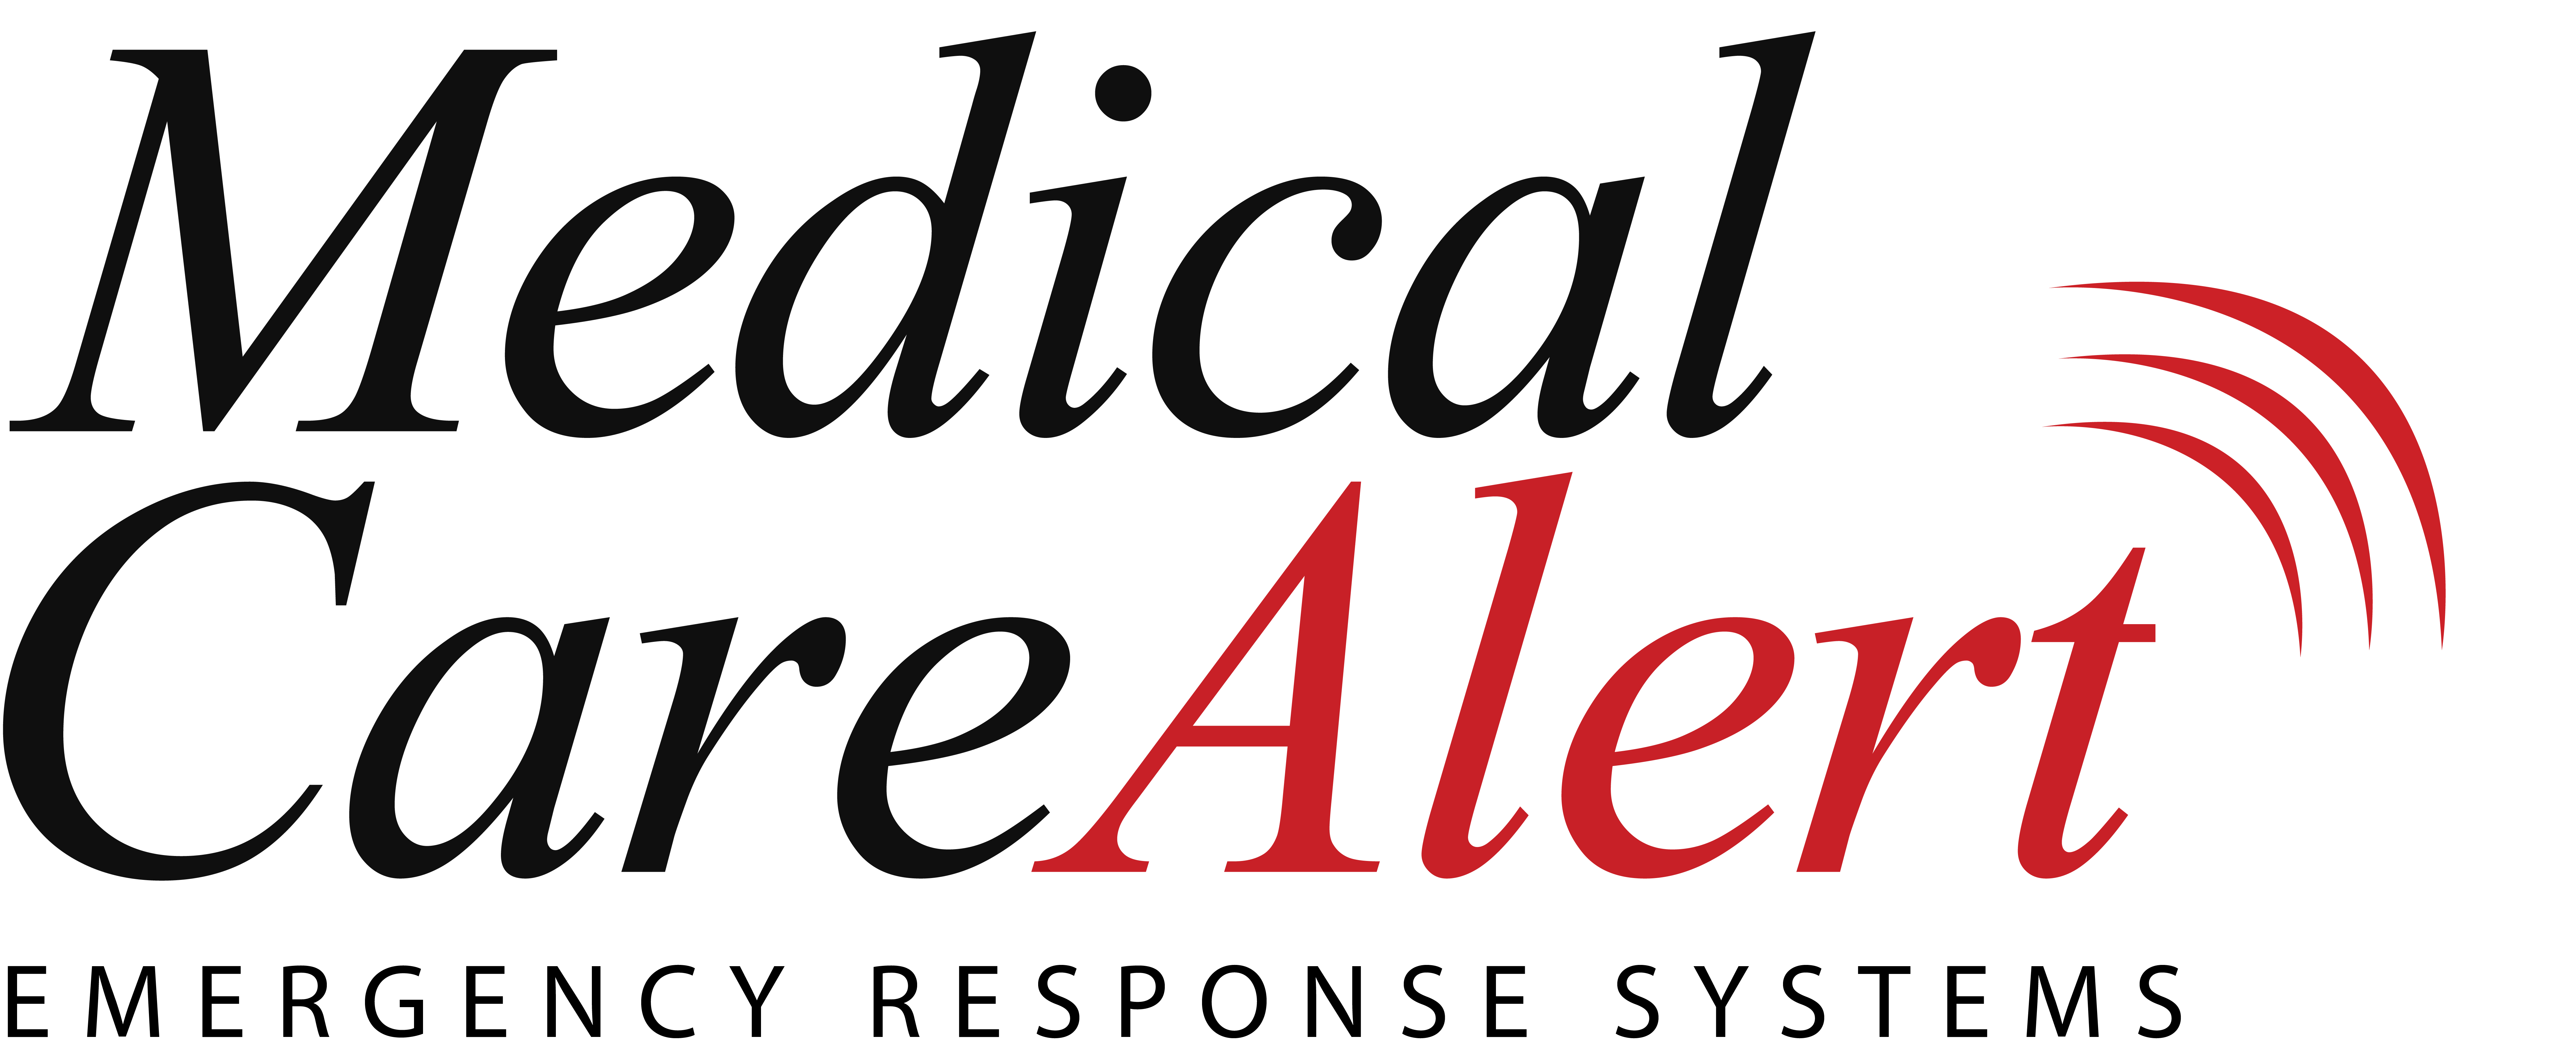 Care complaints and reviews. Emergency clipart medical alert